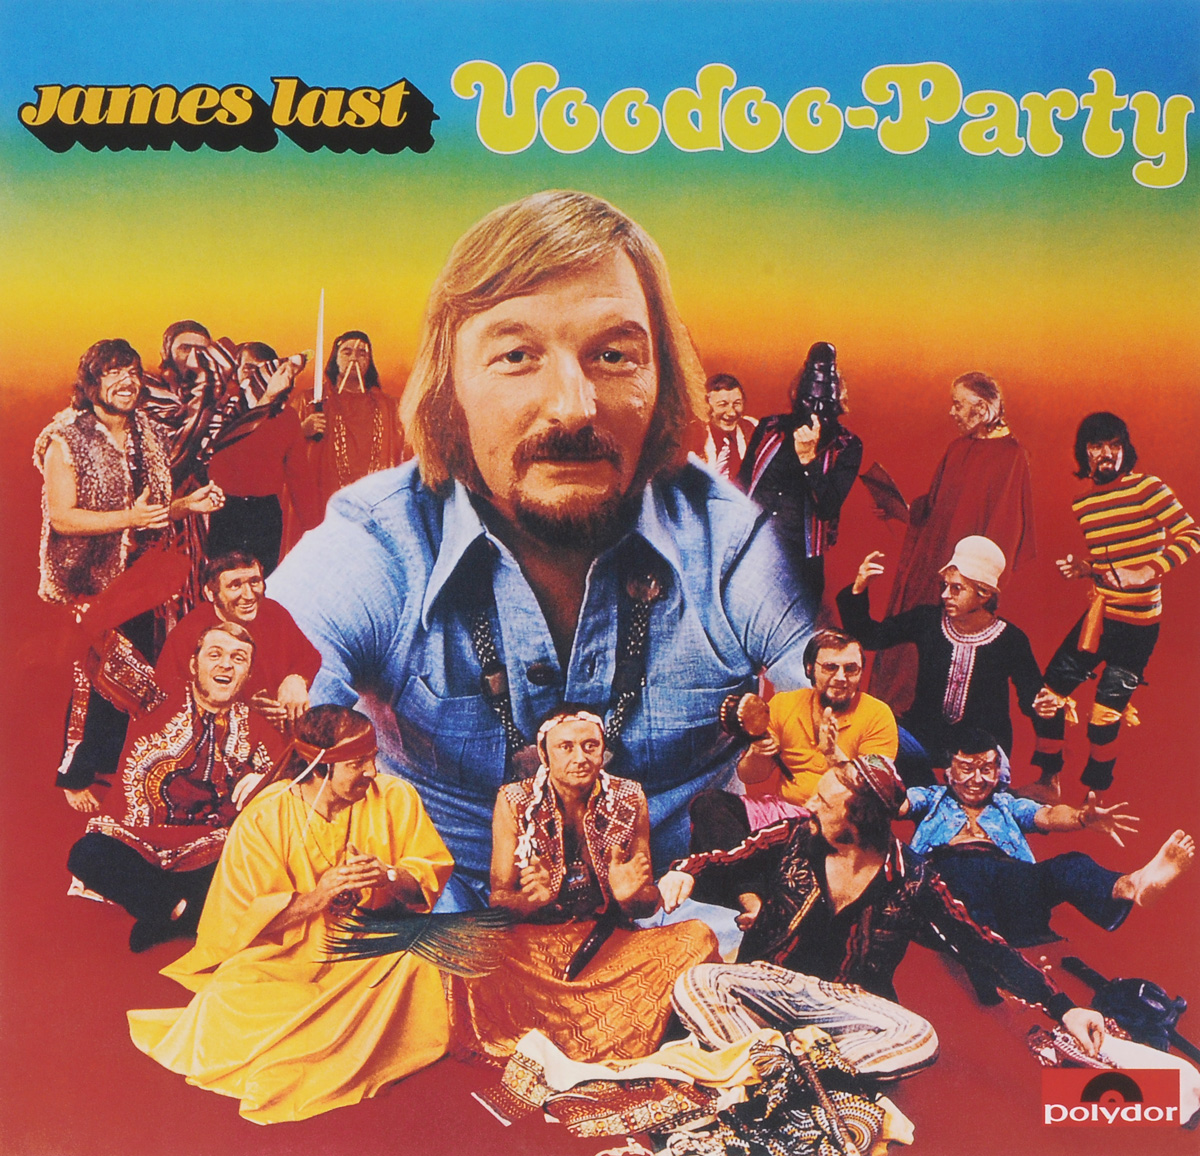 Джеймс Ласт James Last. Voodoo-Party (LP) джеймс ласт james last 80 greatest hits 3 cd